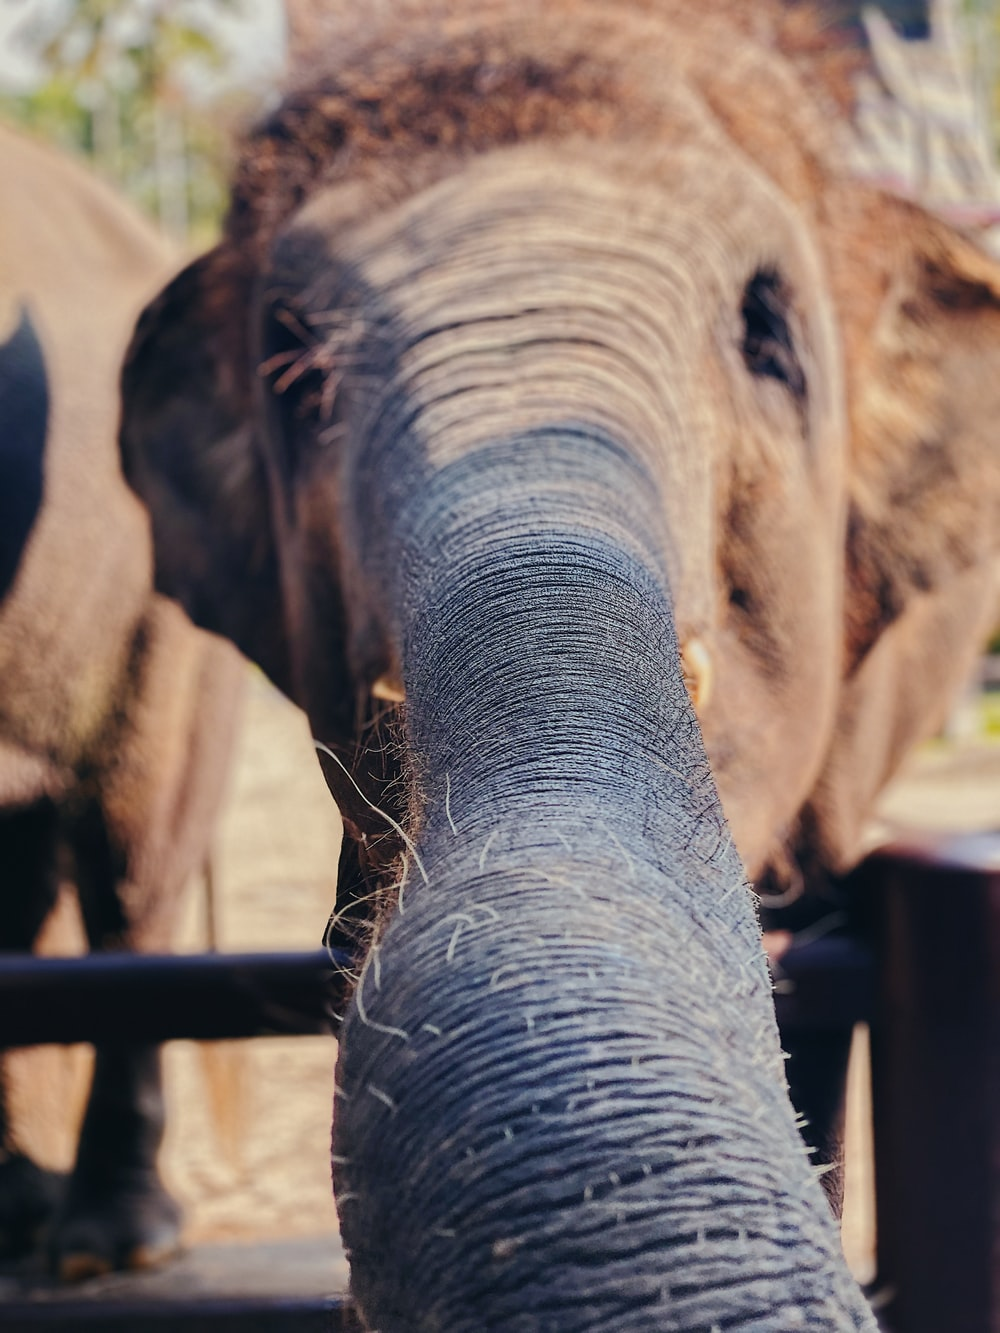 brown elephant in close up photography during daytime